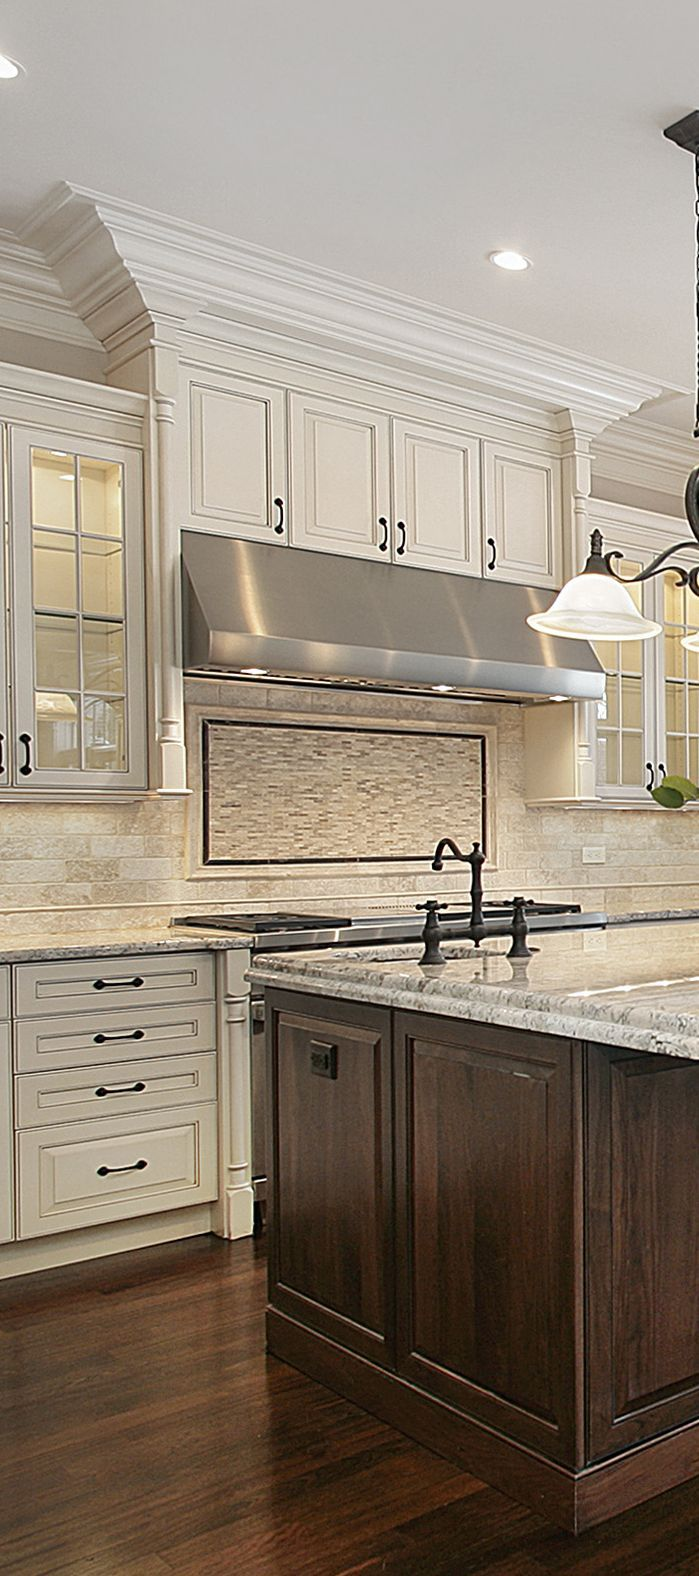 best 25 off white kitchens ideas on pinterest off white cabinets off white kitchen cabinets and light above kitchen sink